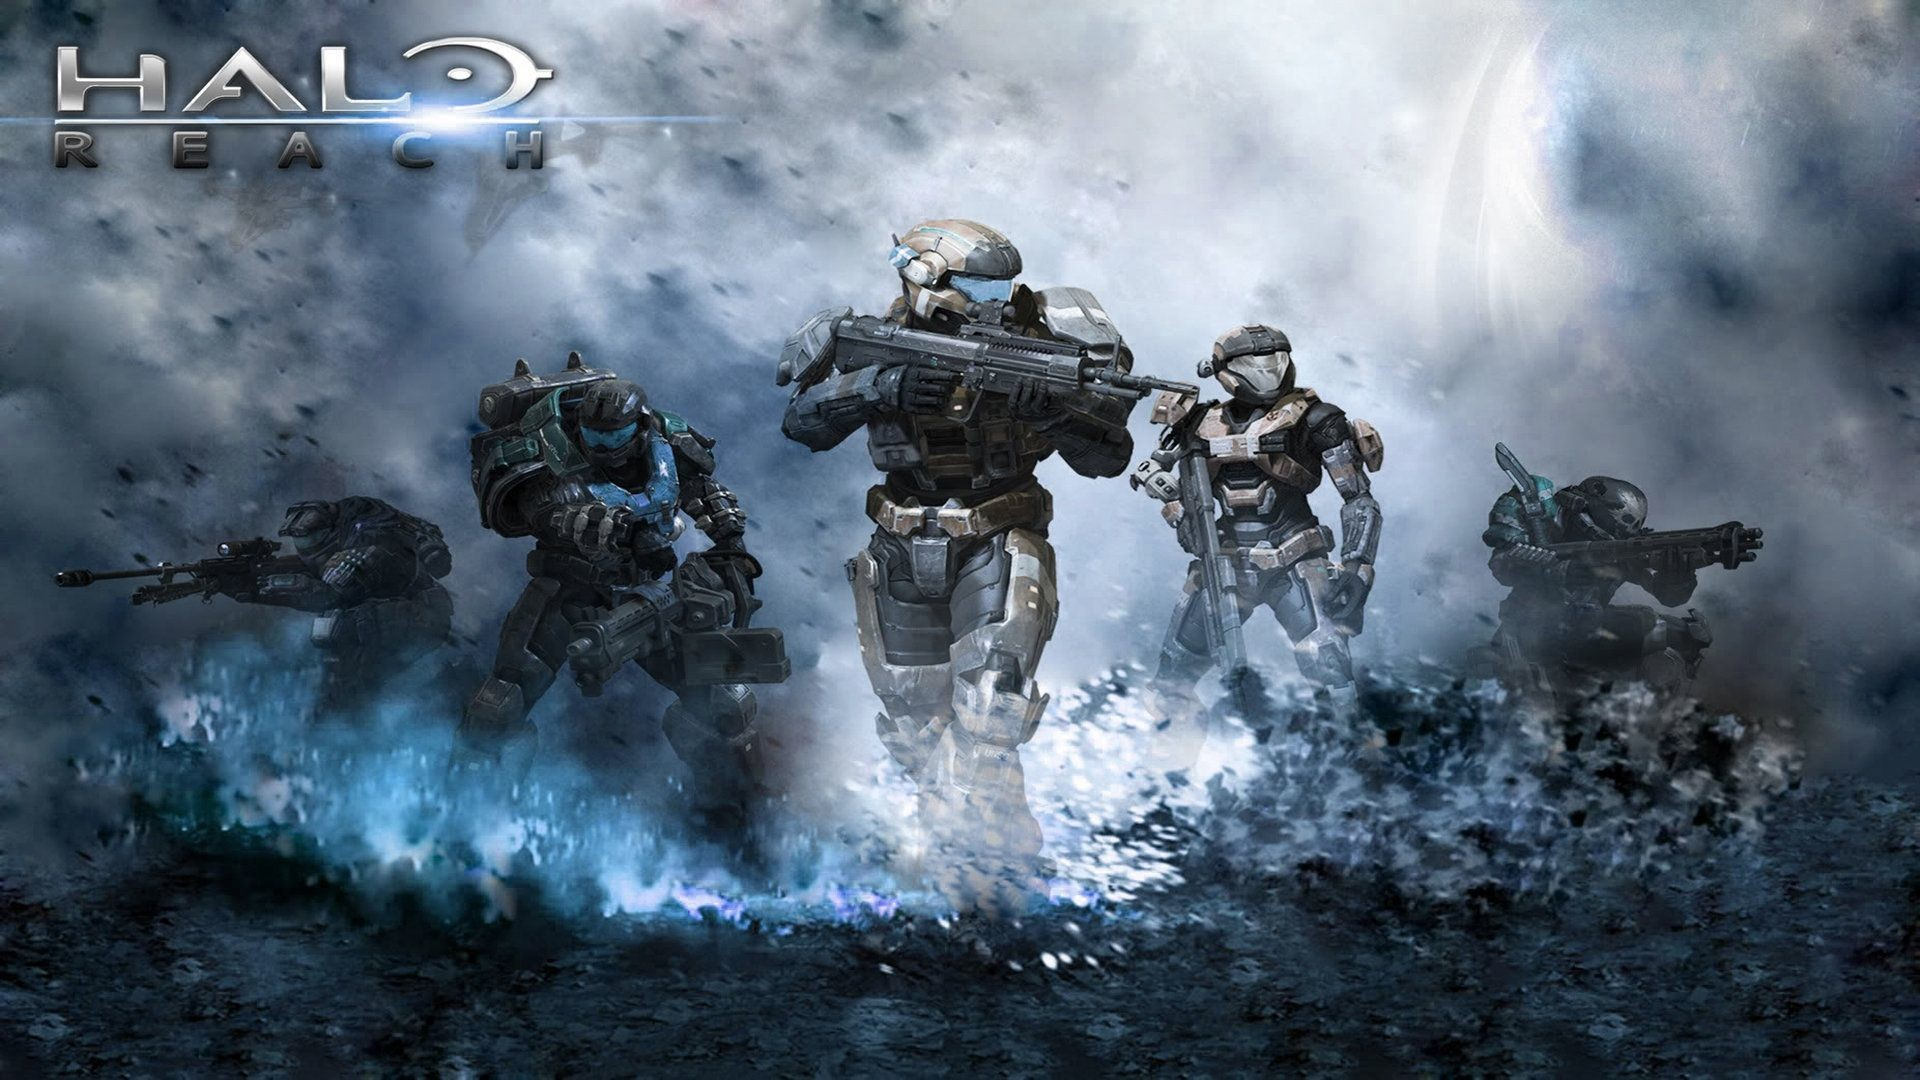 Halo HD Wallpapers Backgrounds Wallpaper 1920×1200 Halo Wallpaper Hd (37  Wallpapers)  